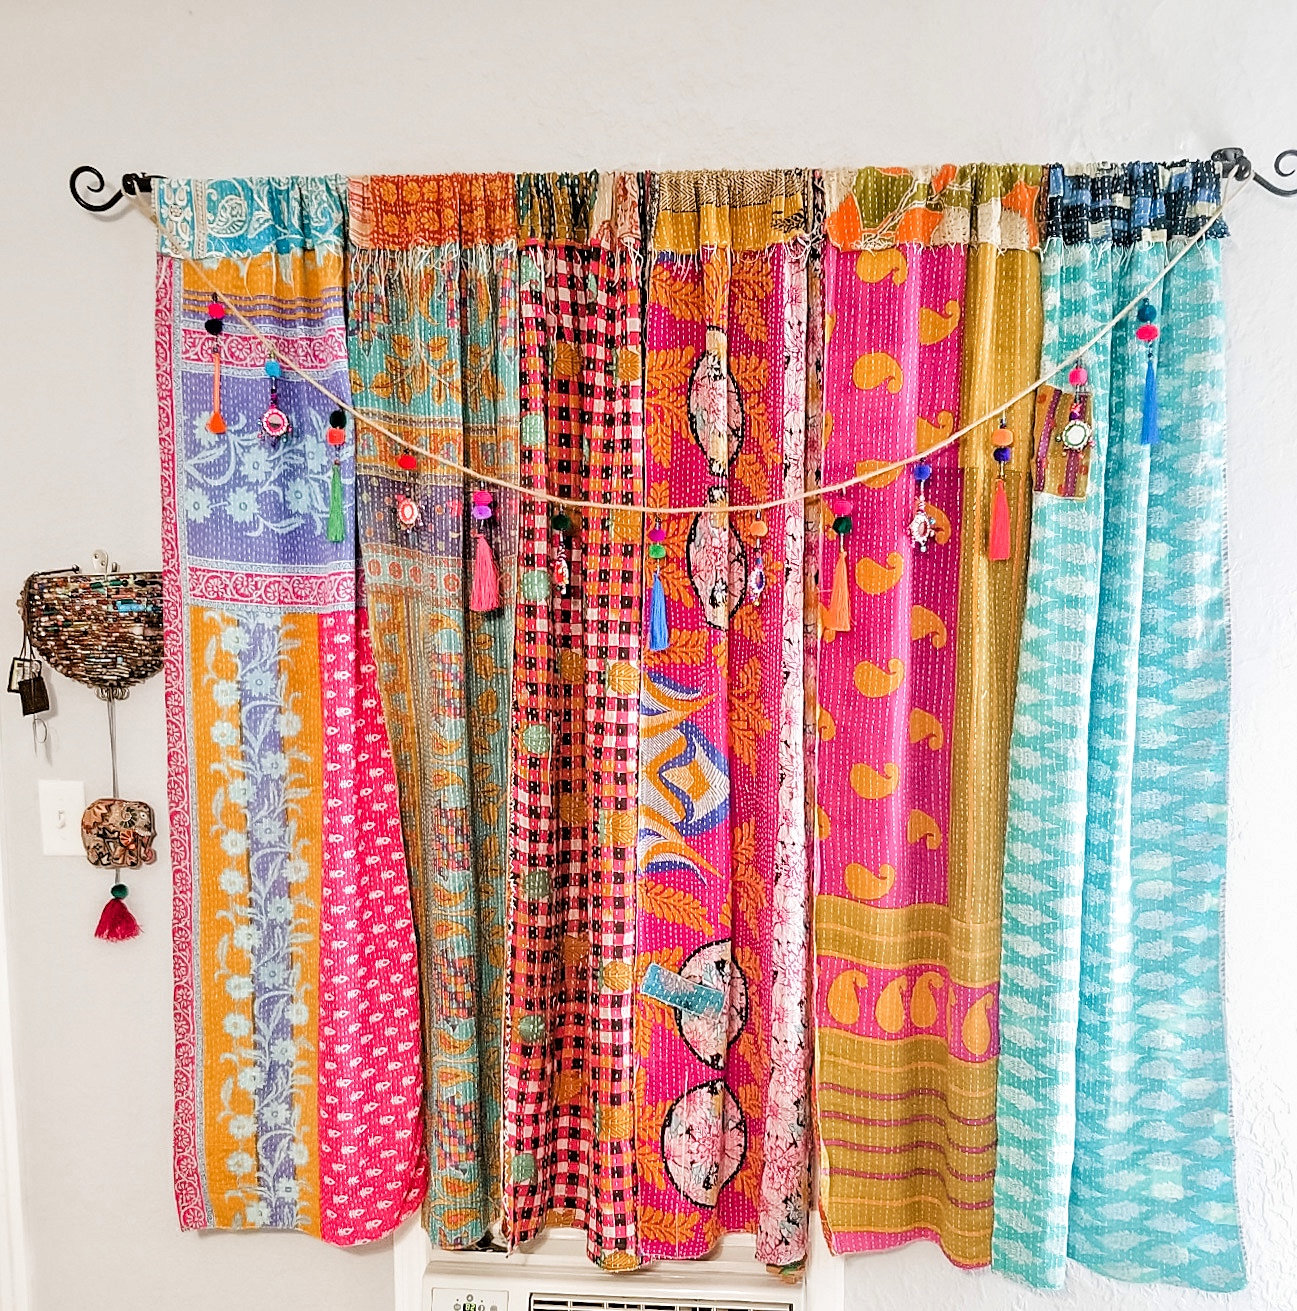 Rustic Boho Scarf Curtain Panels Kantha Patchwork Colorful Hippie Gypsy Camper The Rustic Bohemian